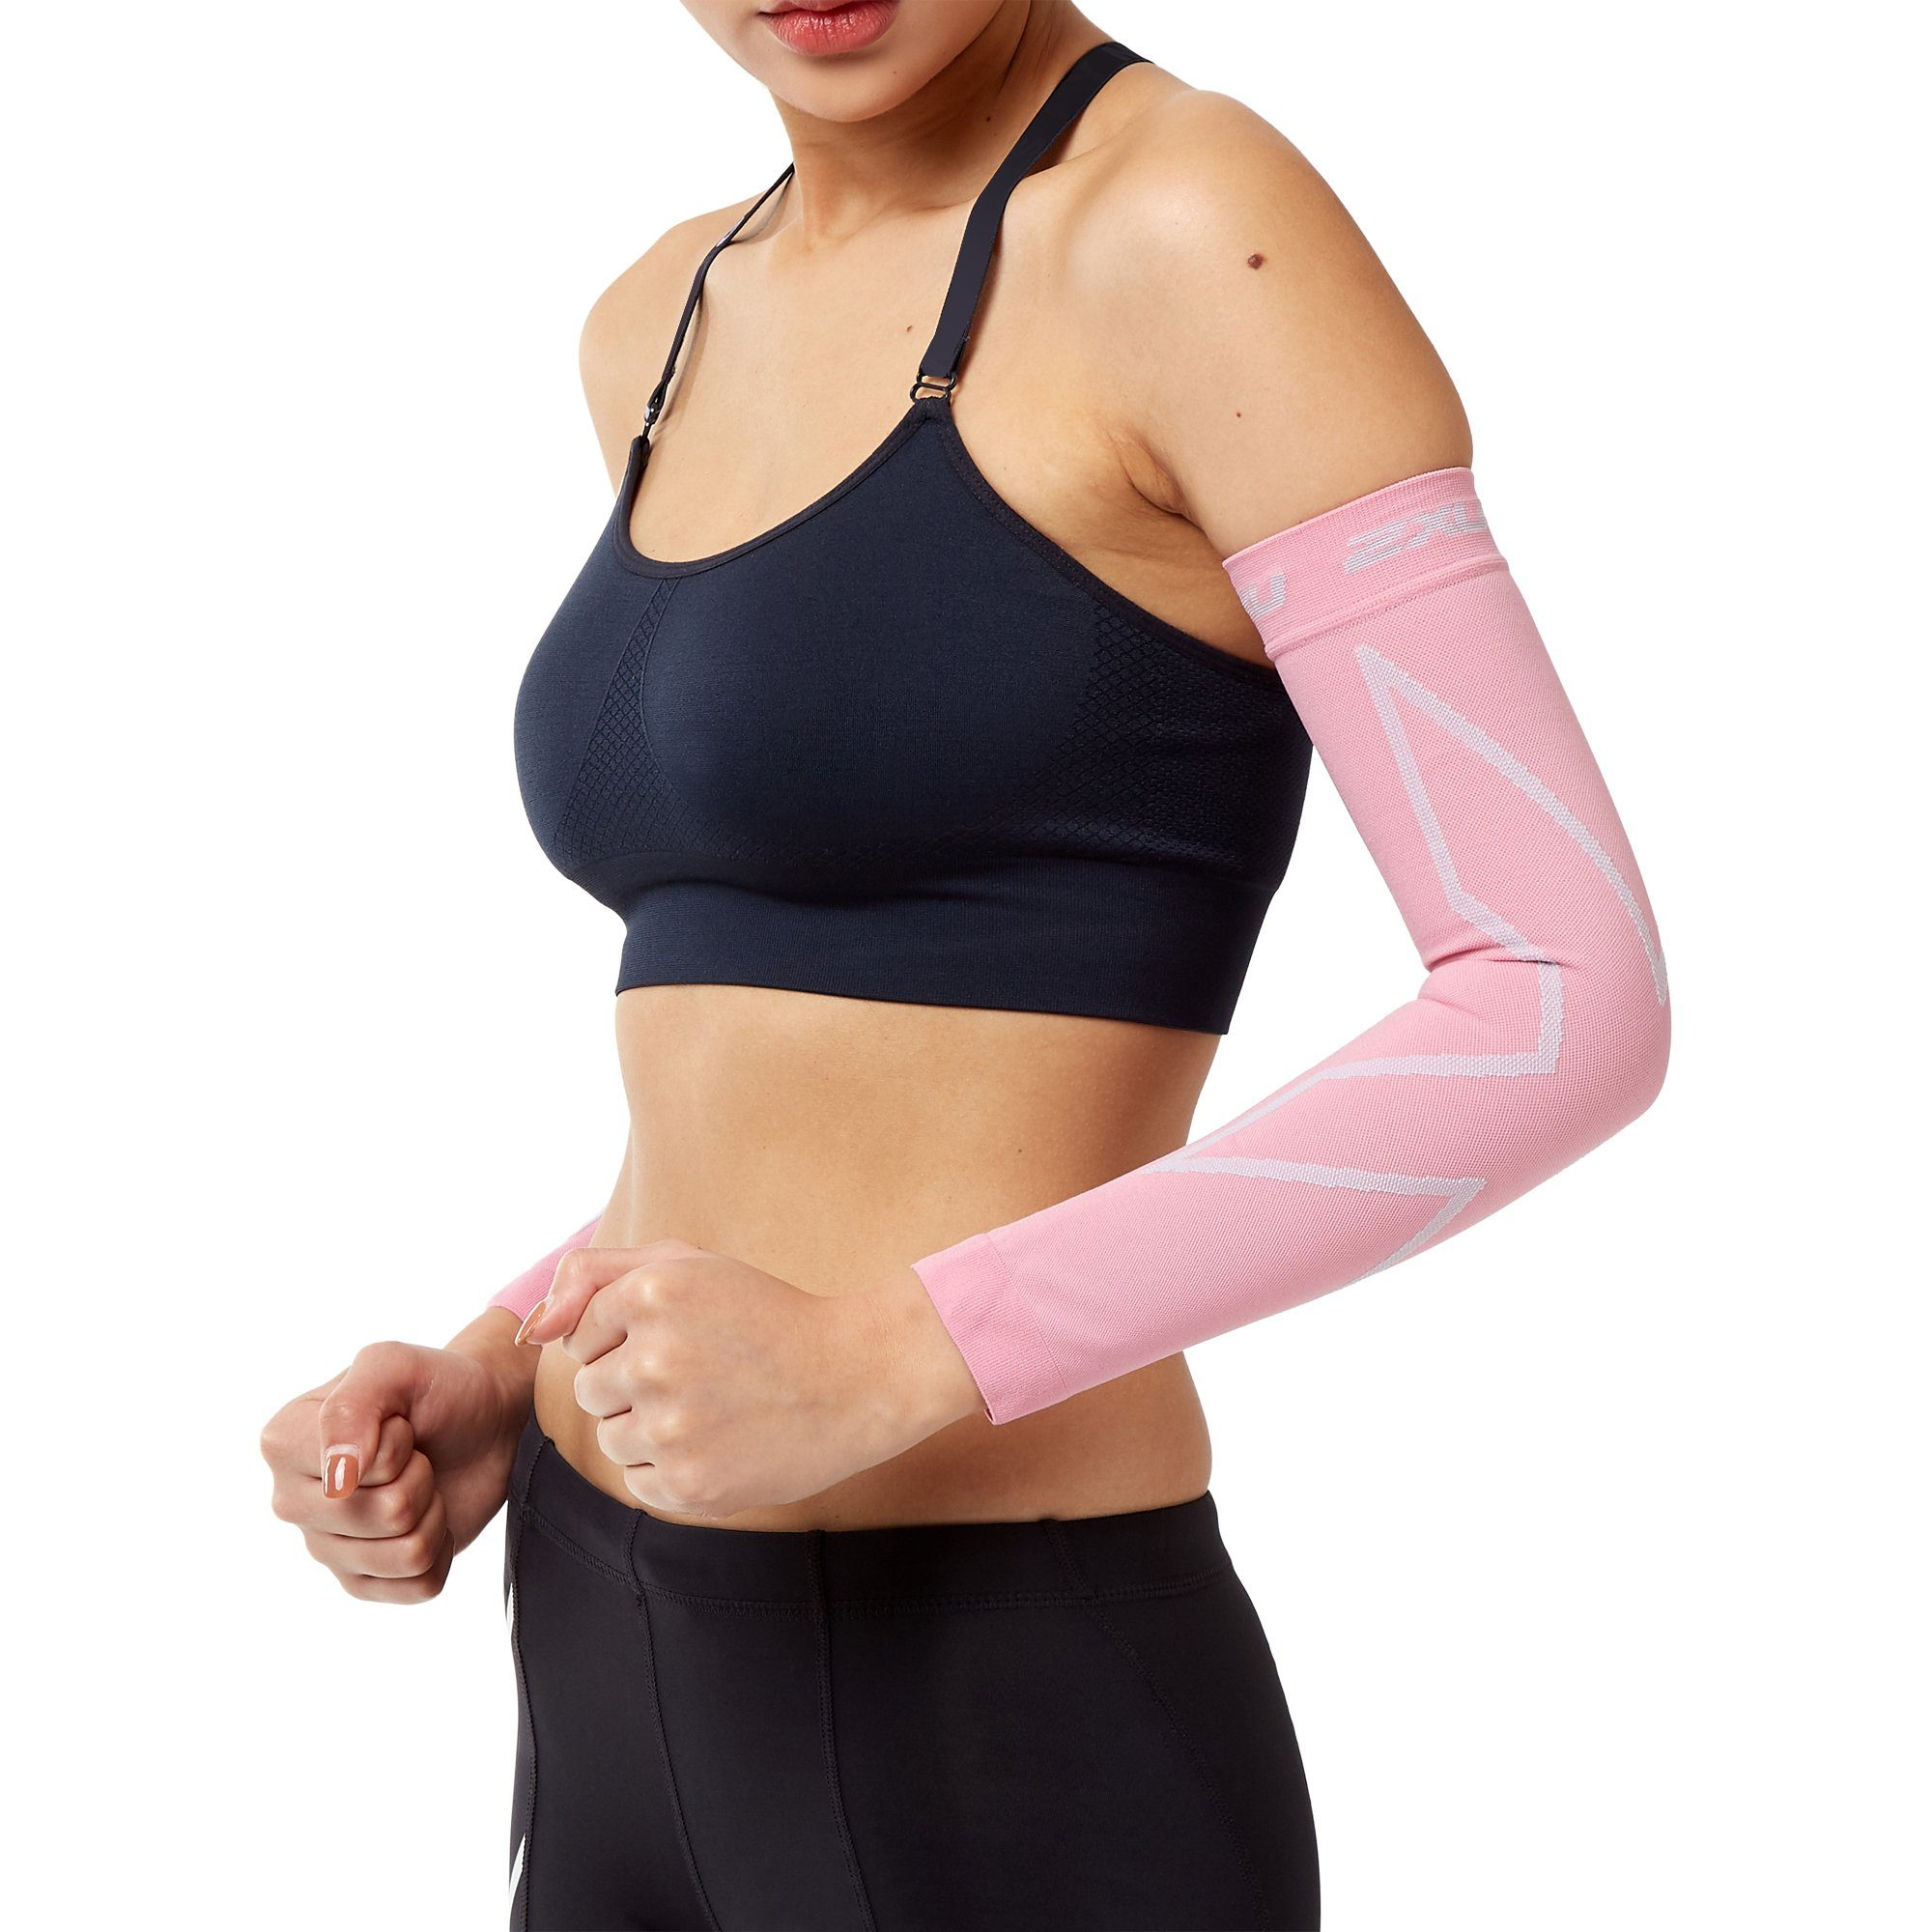 2XU Compression Arm Sleeves - Pink Accessories 2XU  (2019203088443)